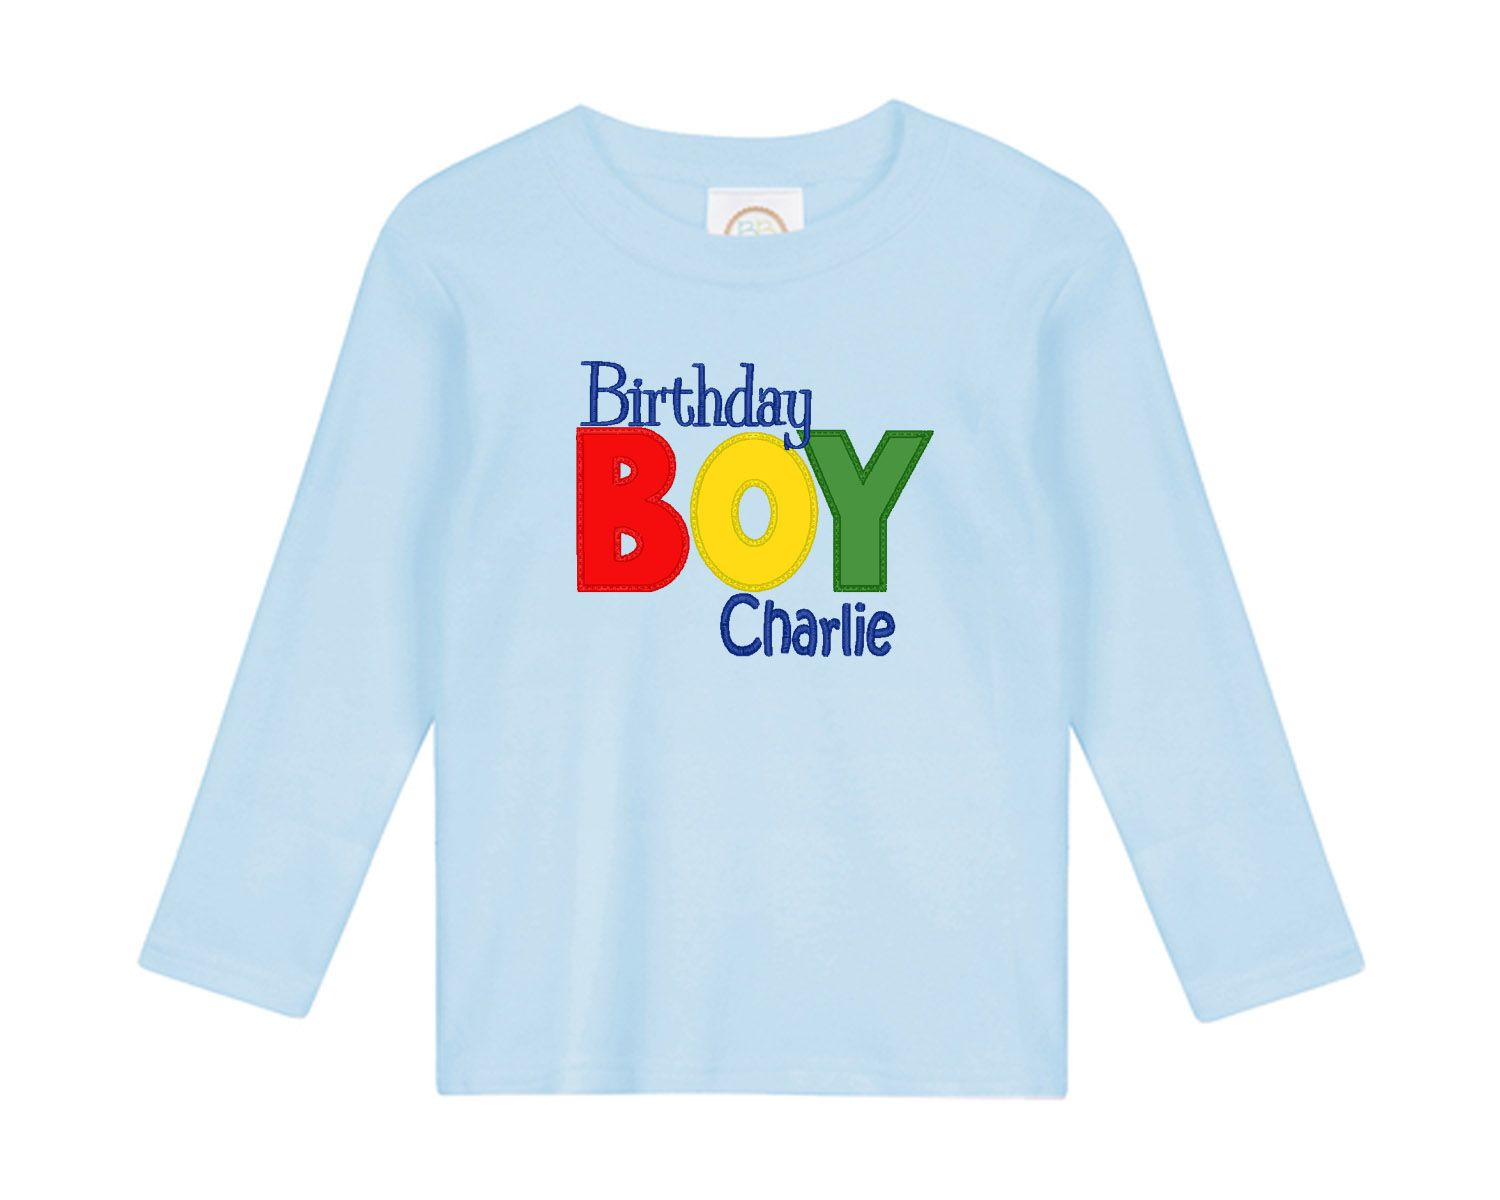 Personalized Birthday Boy Shirt Short Or Long Sleeve 0 3m 18m From Haute Tot Boutique